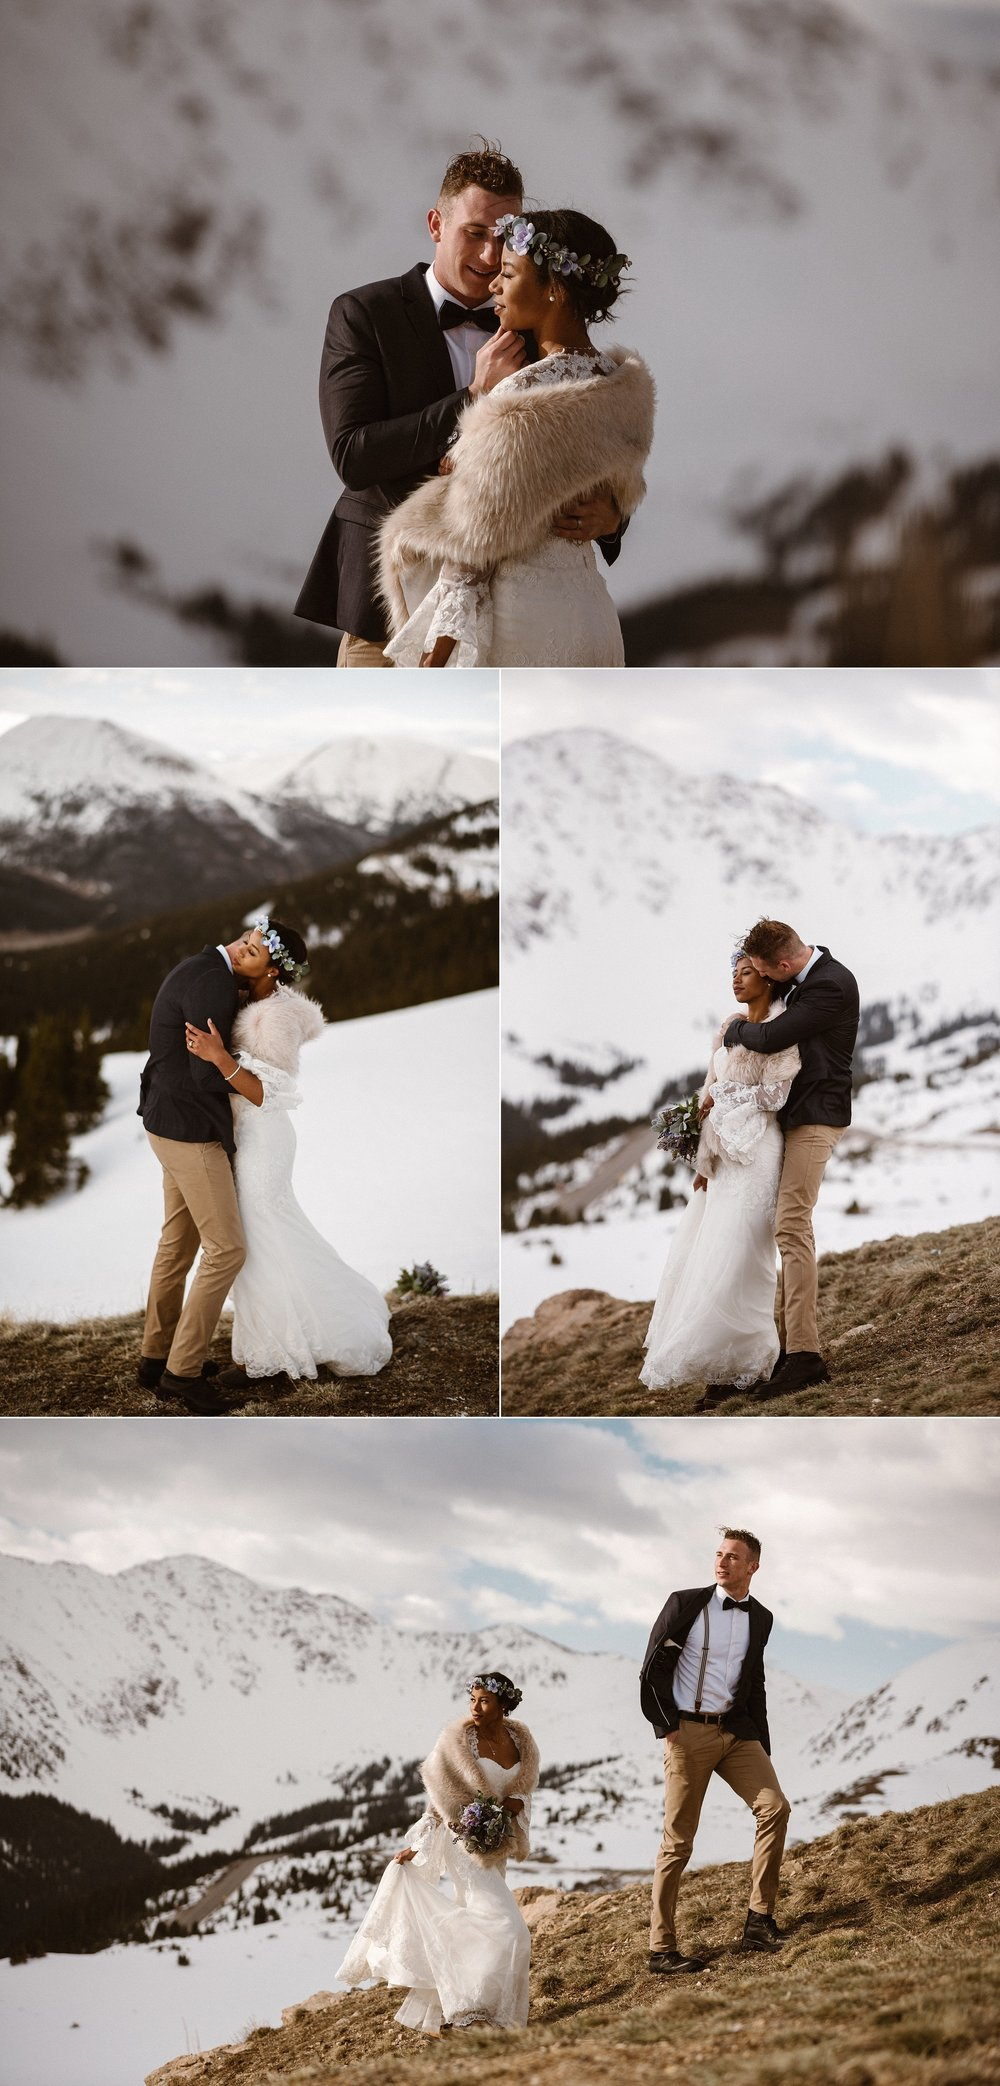 Like and old romantic movie, Jared grabbed Mikayla's hand, kissing it softly. Their vintage style a perfect contrast for the icy landscape of Loveland Pass where they celebrated their intimate elopement, captured by Colorado native Maddie Mae Photography.